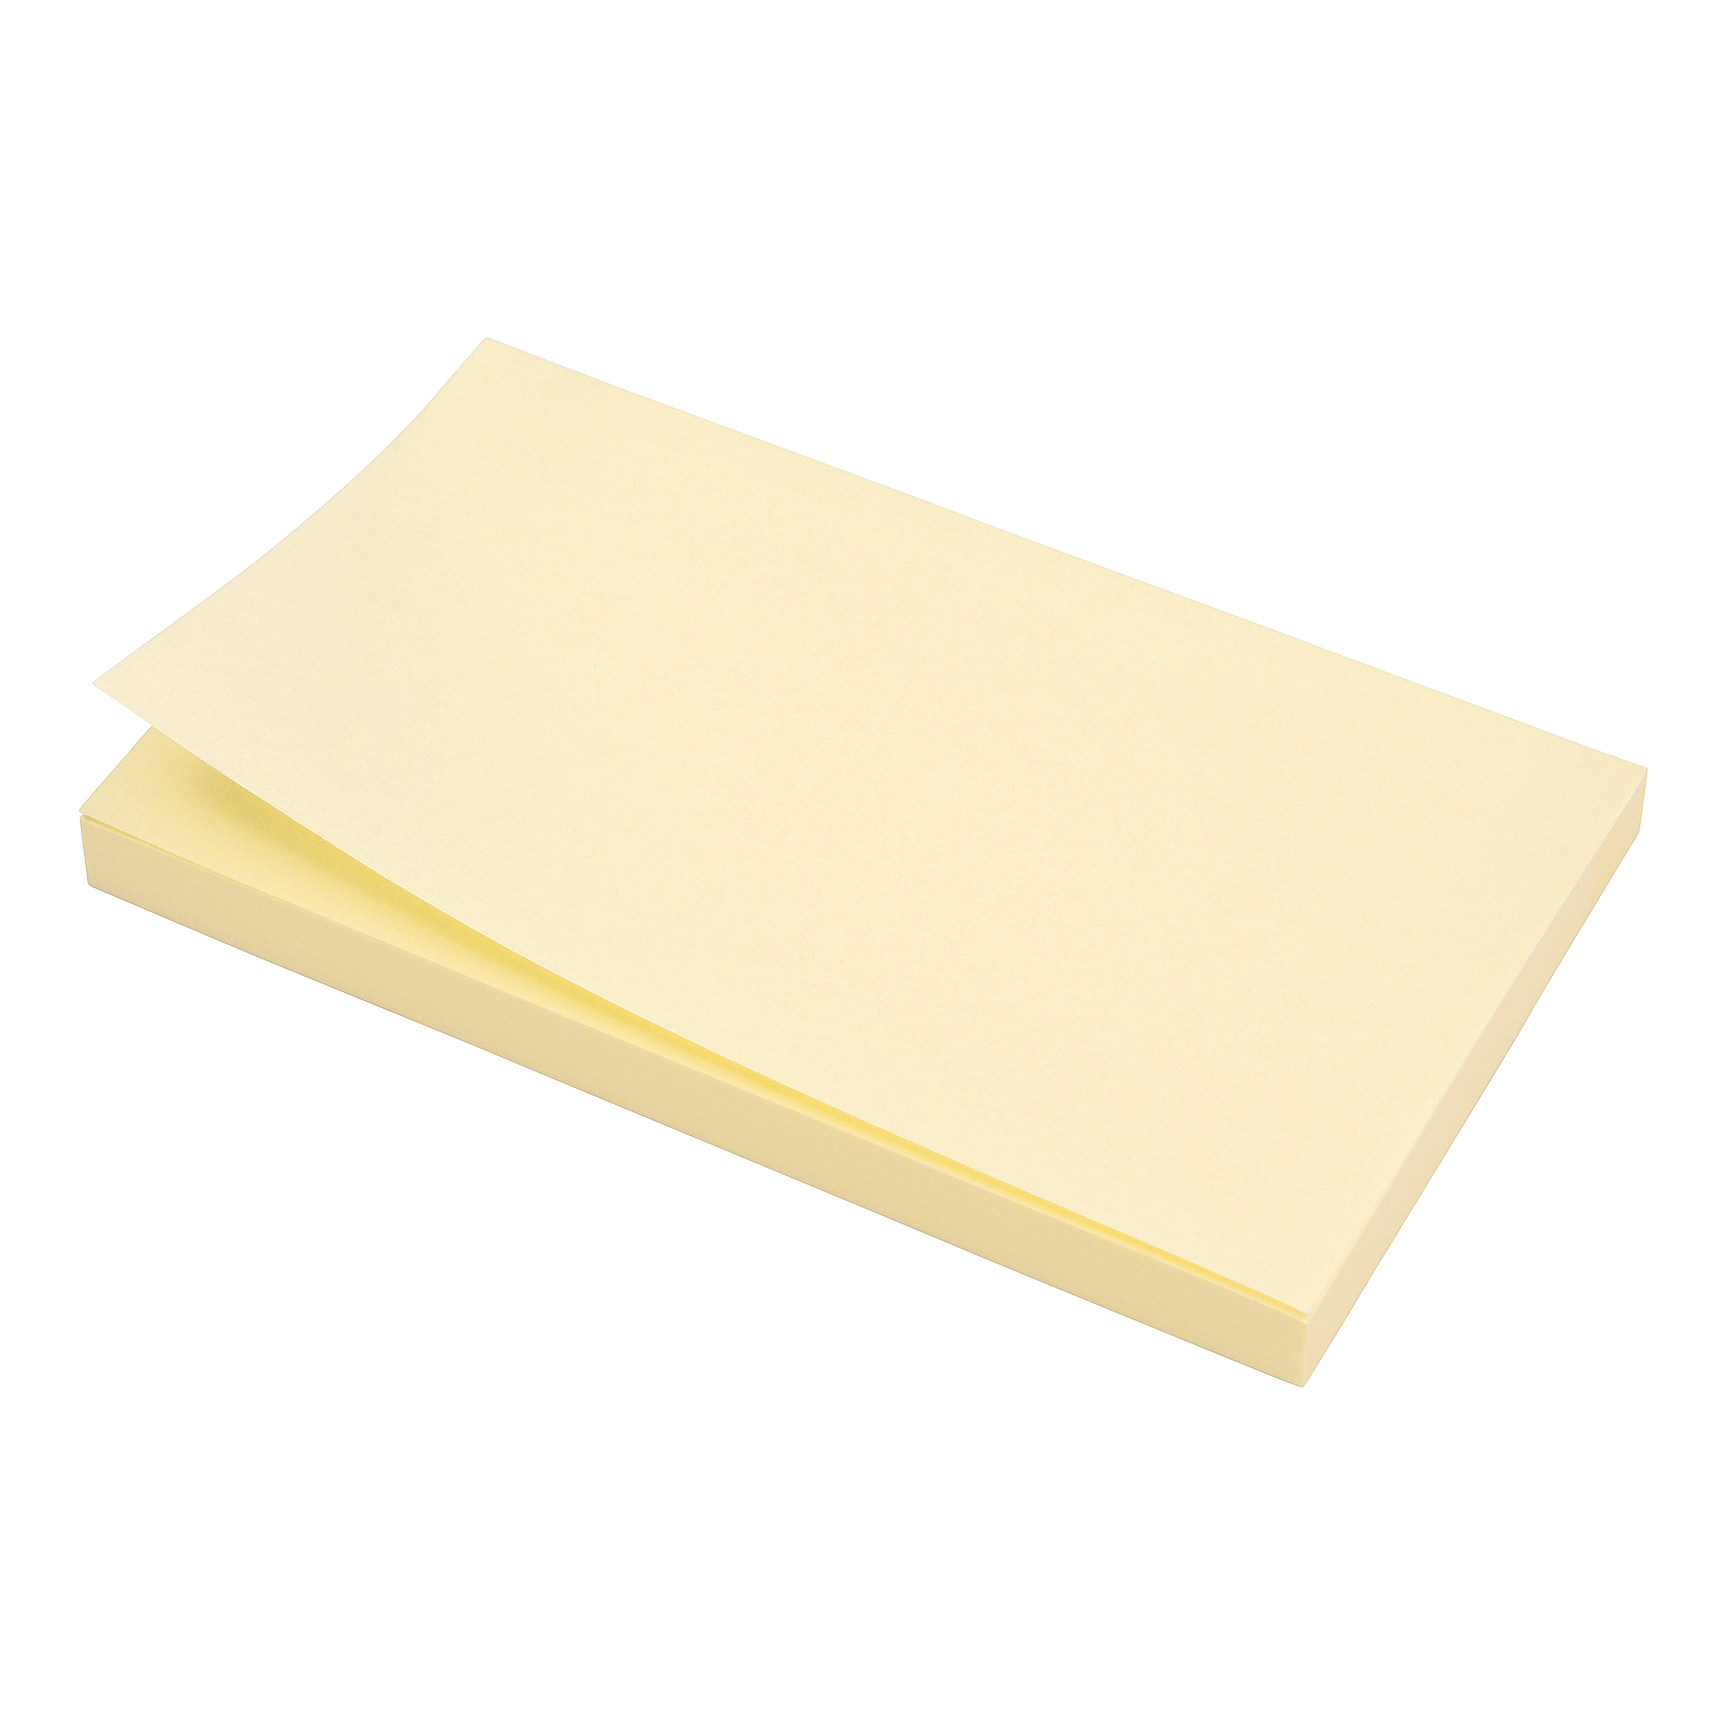 Yellow 5 Star Office Extra Sticky Re-Move Notes Pad of 90 Sheets 76x127mm Yellow Pack 12